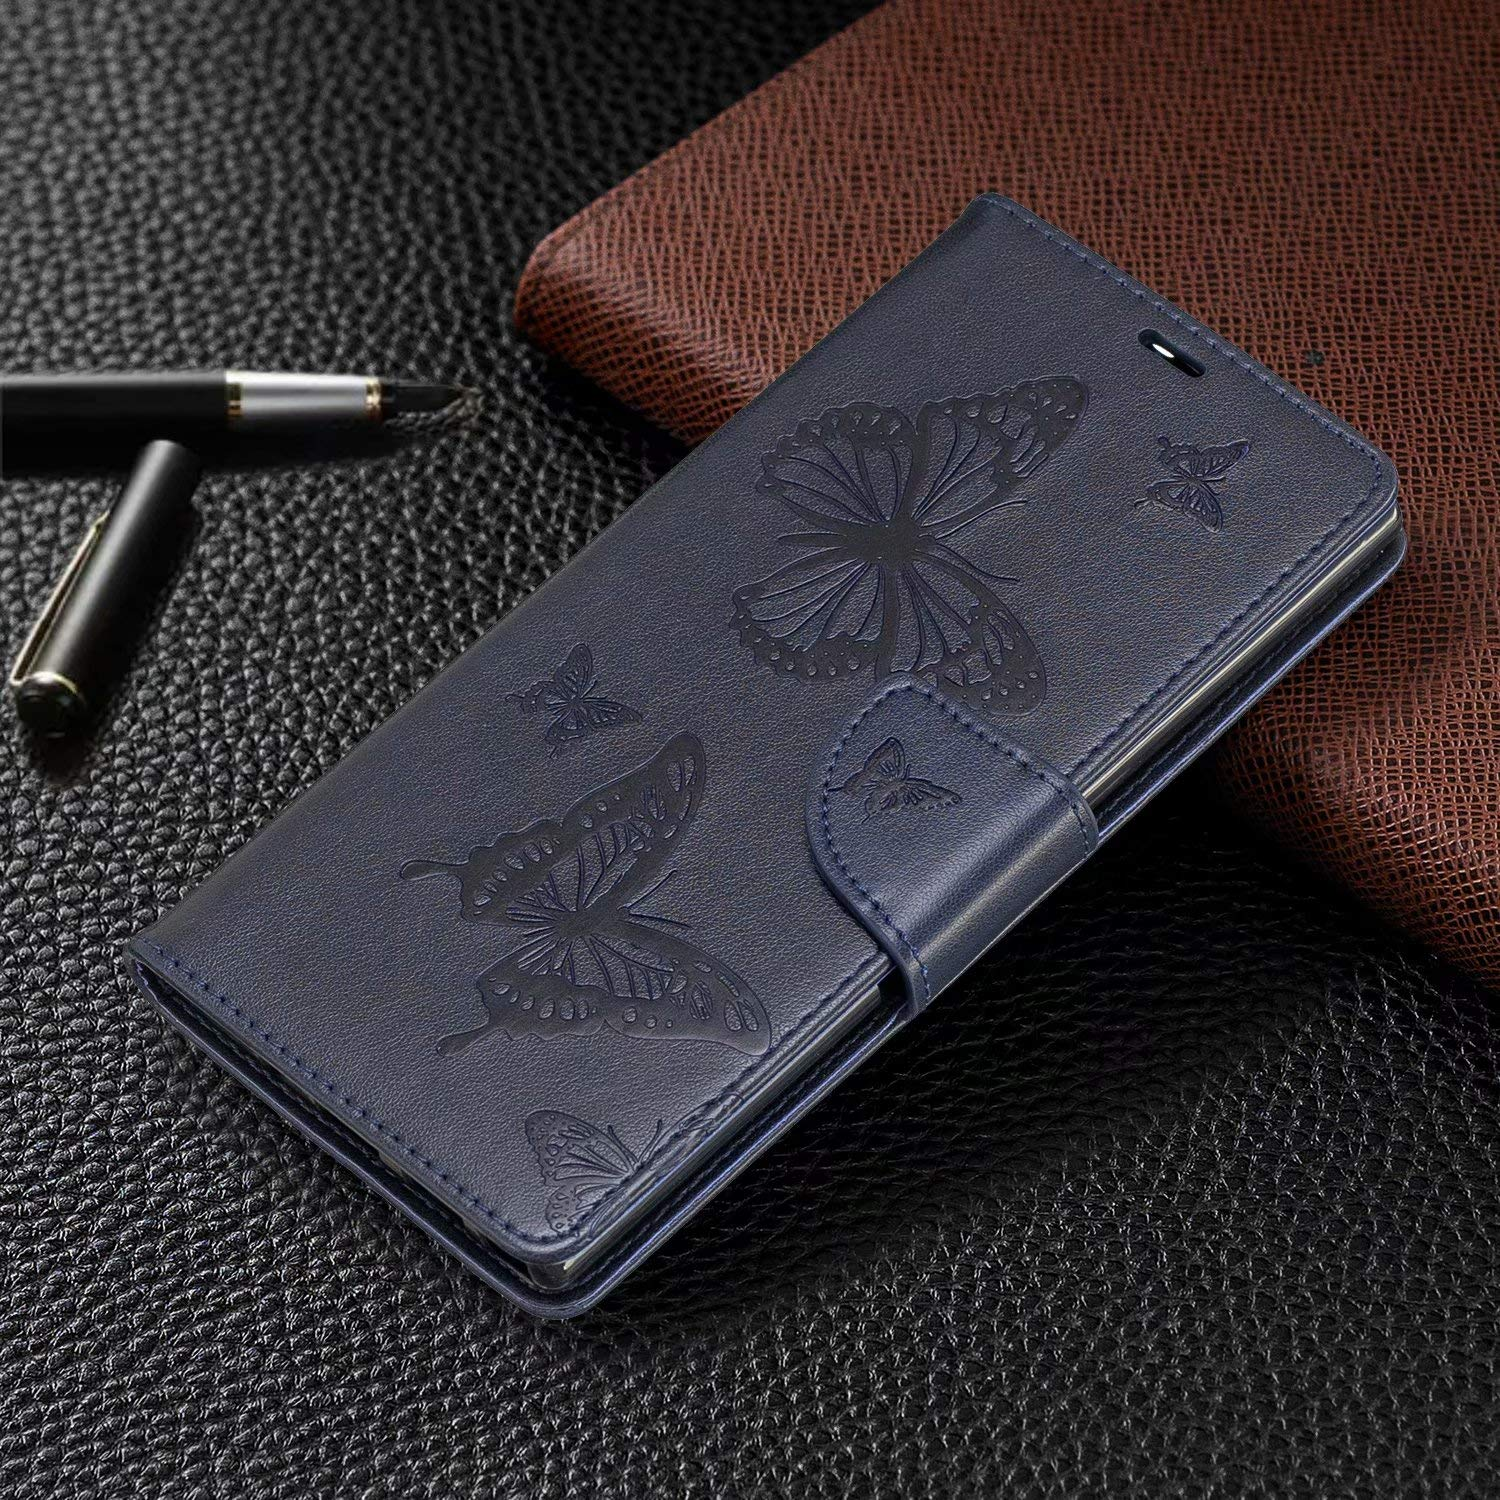 Premium PU Leather Magnetic Folio Wallet Case for Samsung Galaxy Note 10+ Plus 5G Galaxy Note 10 Plus Case Kickstand Feature Green Ranyi Butterfly Embossed Flip Wallet Credit Card Holder